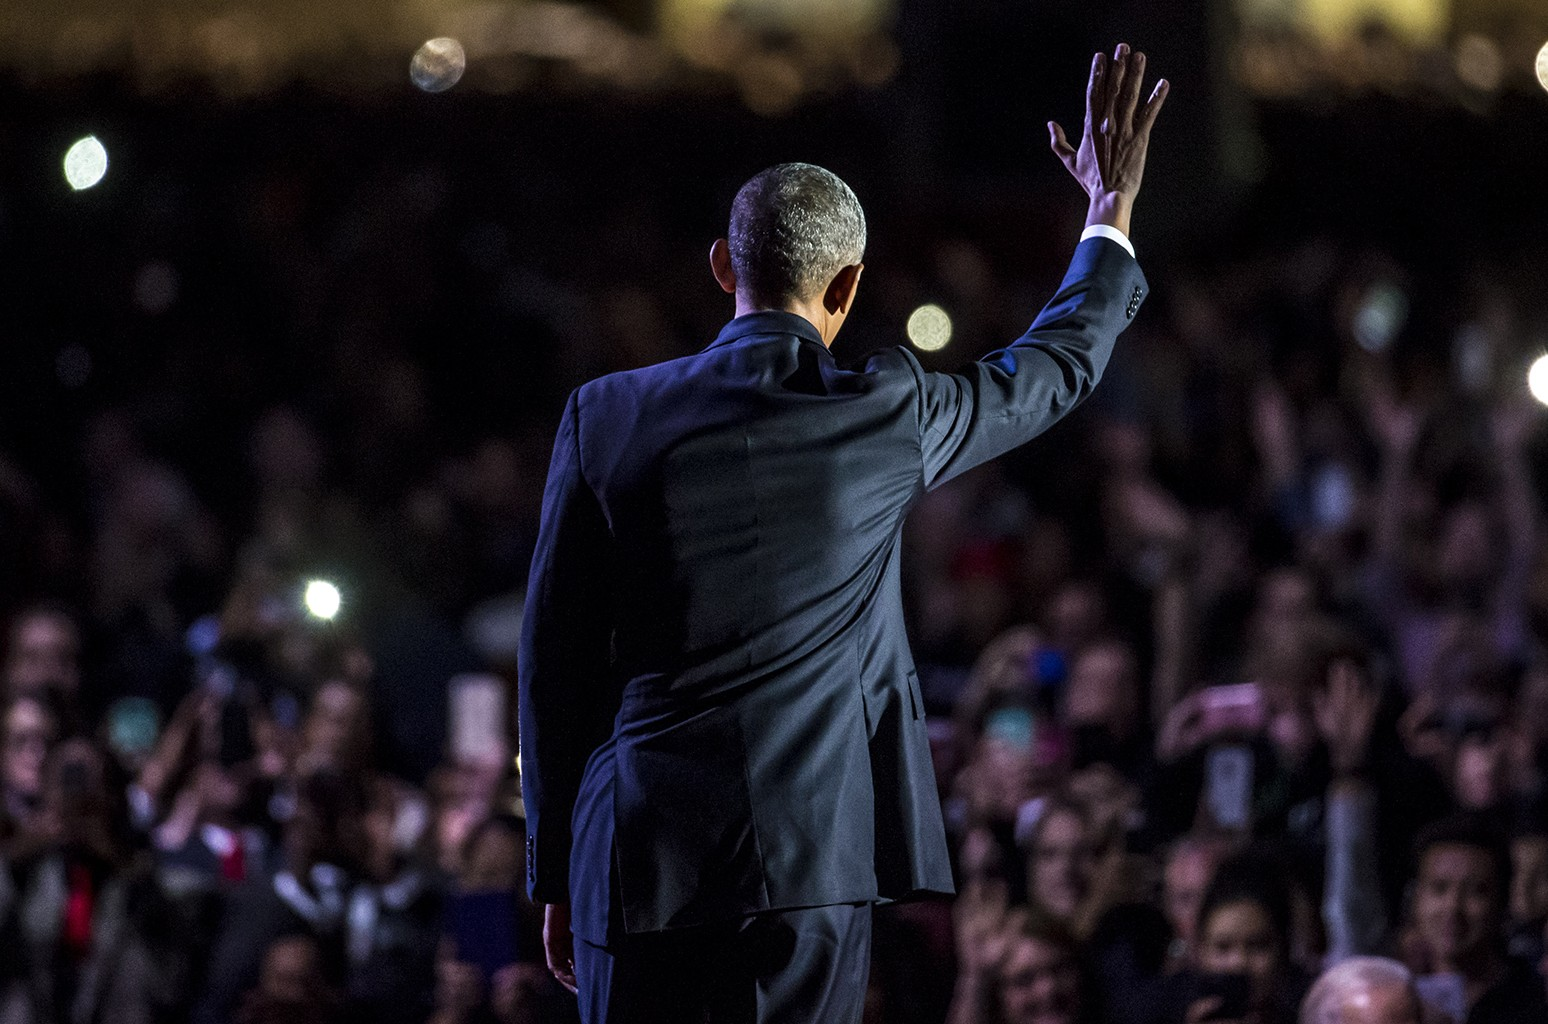 President Obama during his farewell address at McCormick Place in Chicago on Jan. 10, 2017.